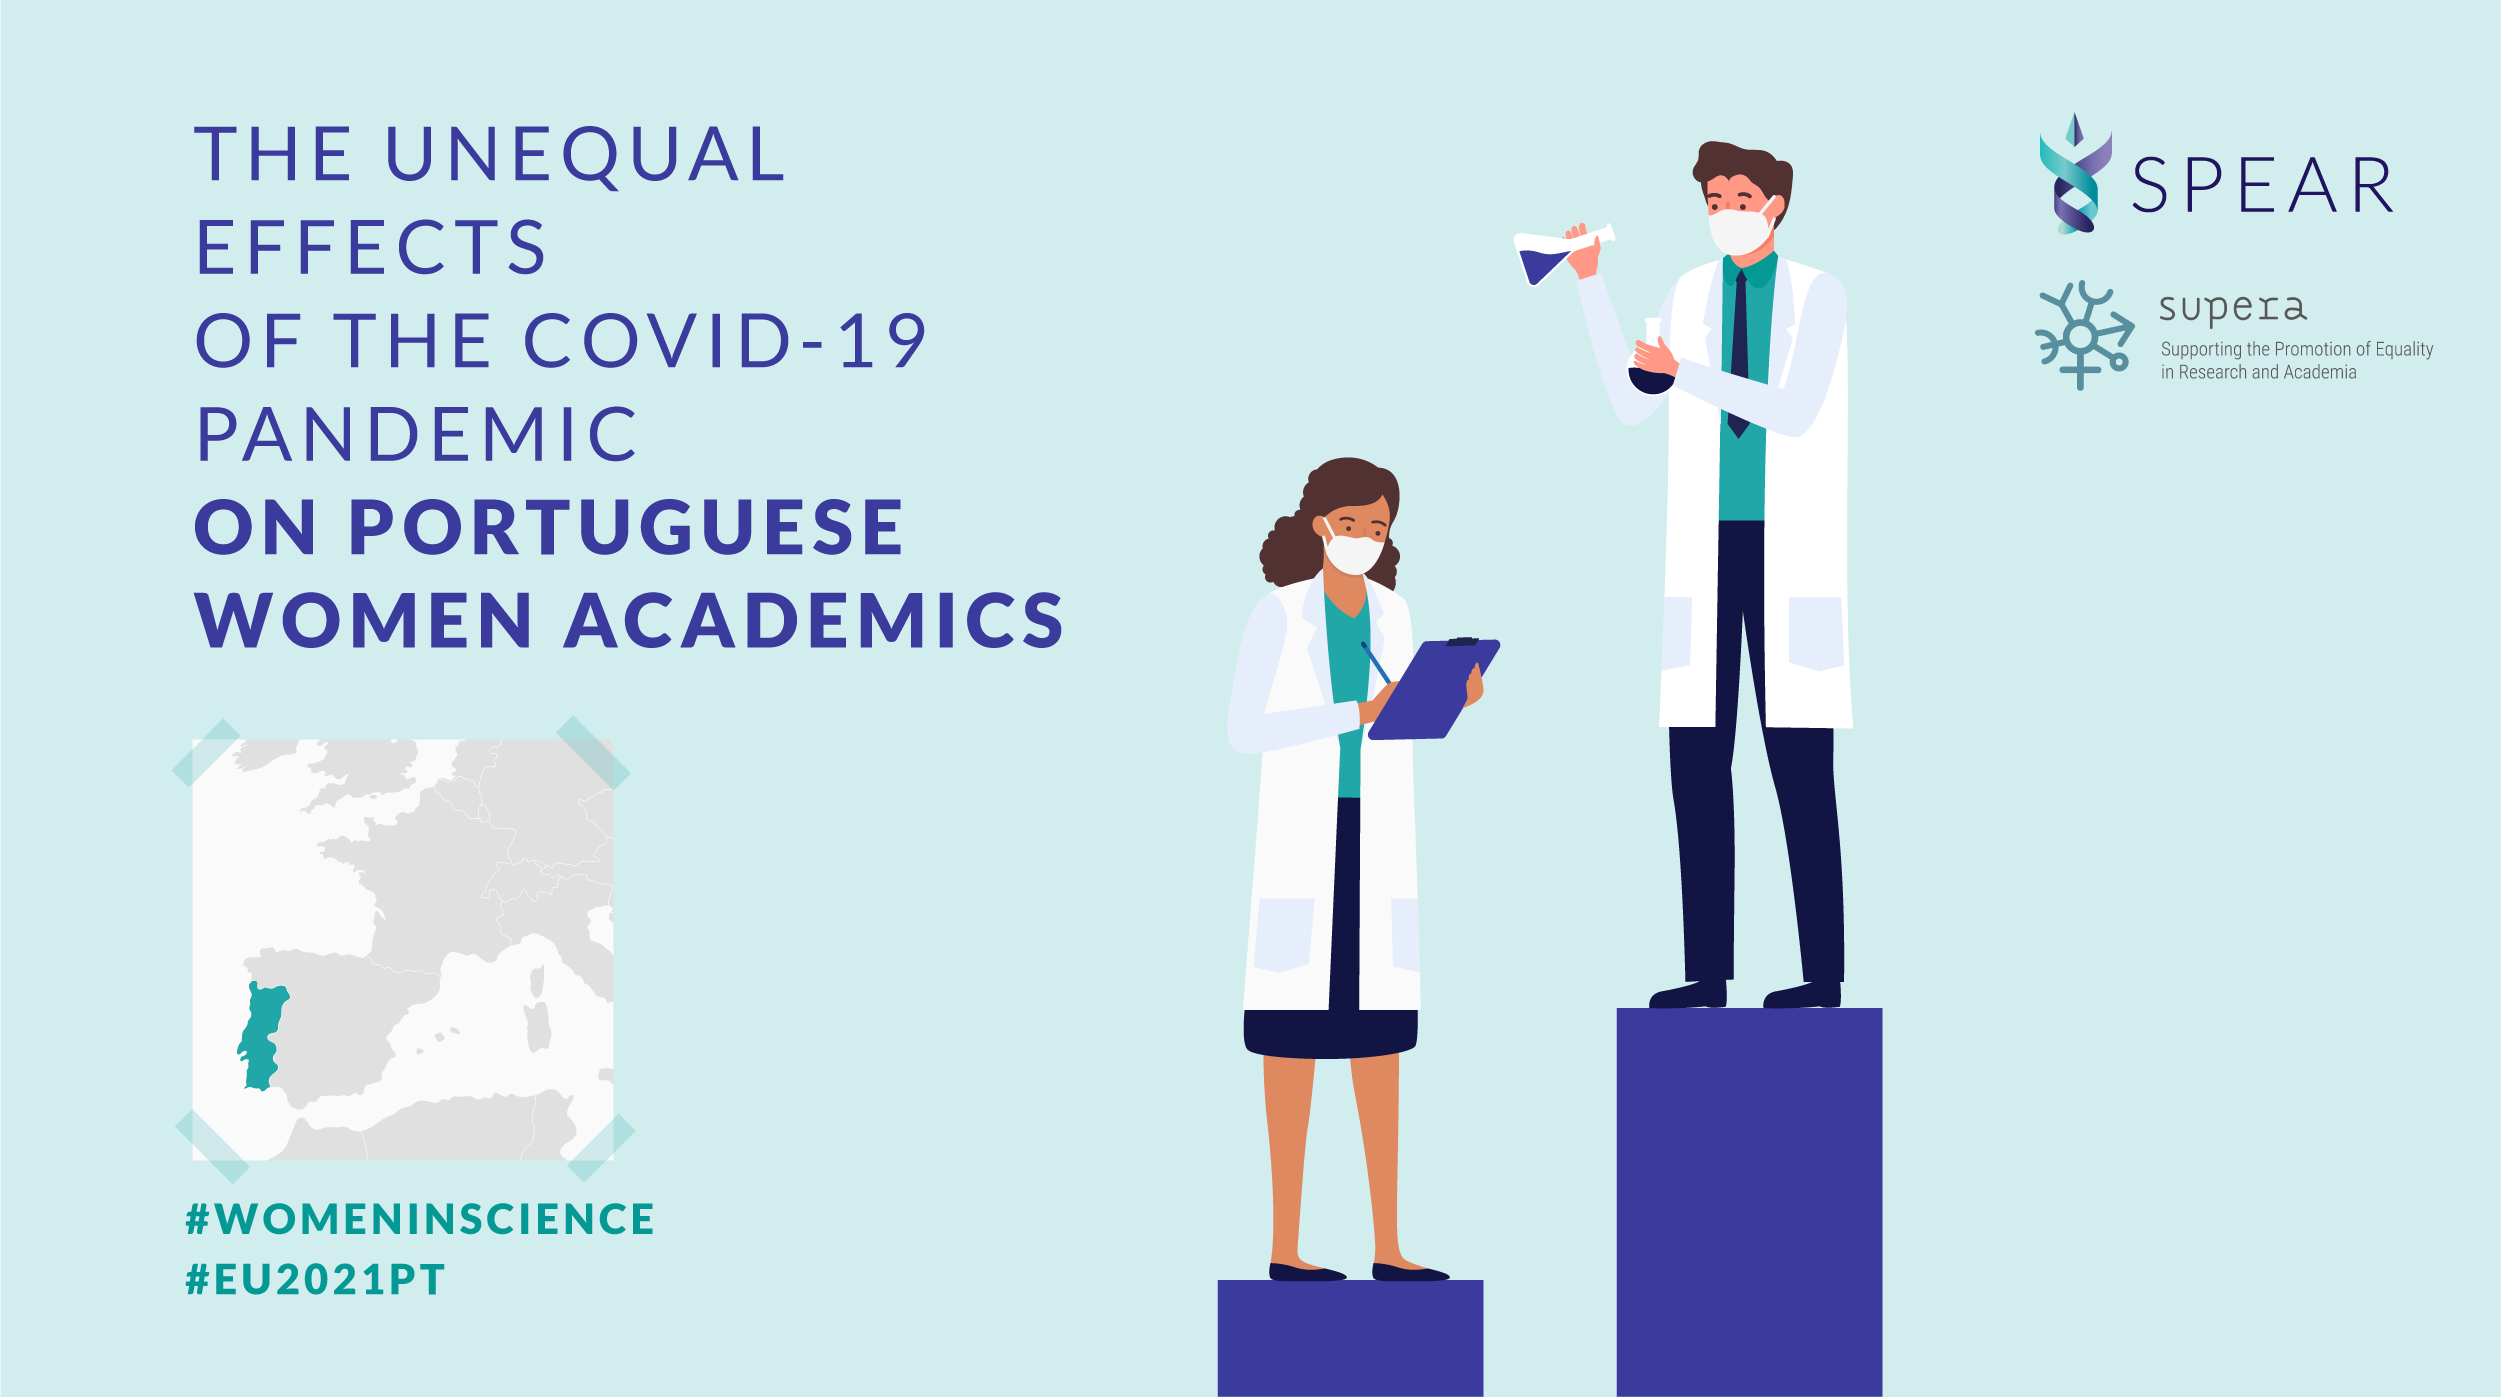 THE UNEQUAL EFFECTS OF THE COVID-19 PANDEMIC ON PORTUGUESE WOMEN ACADEMICS